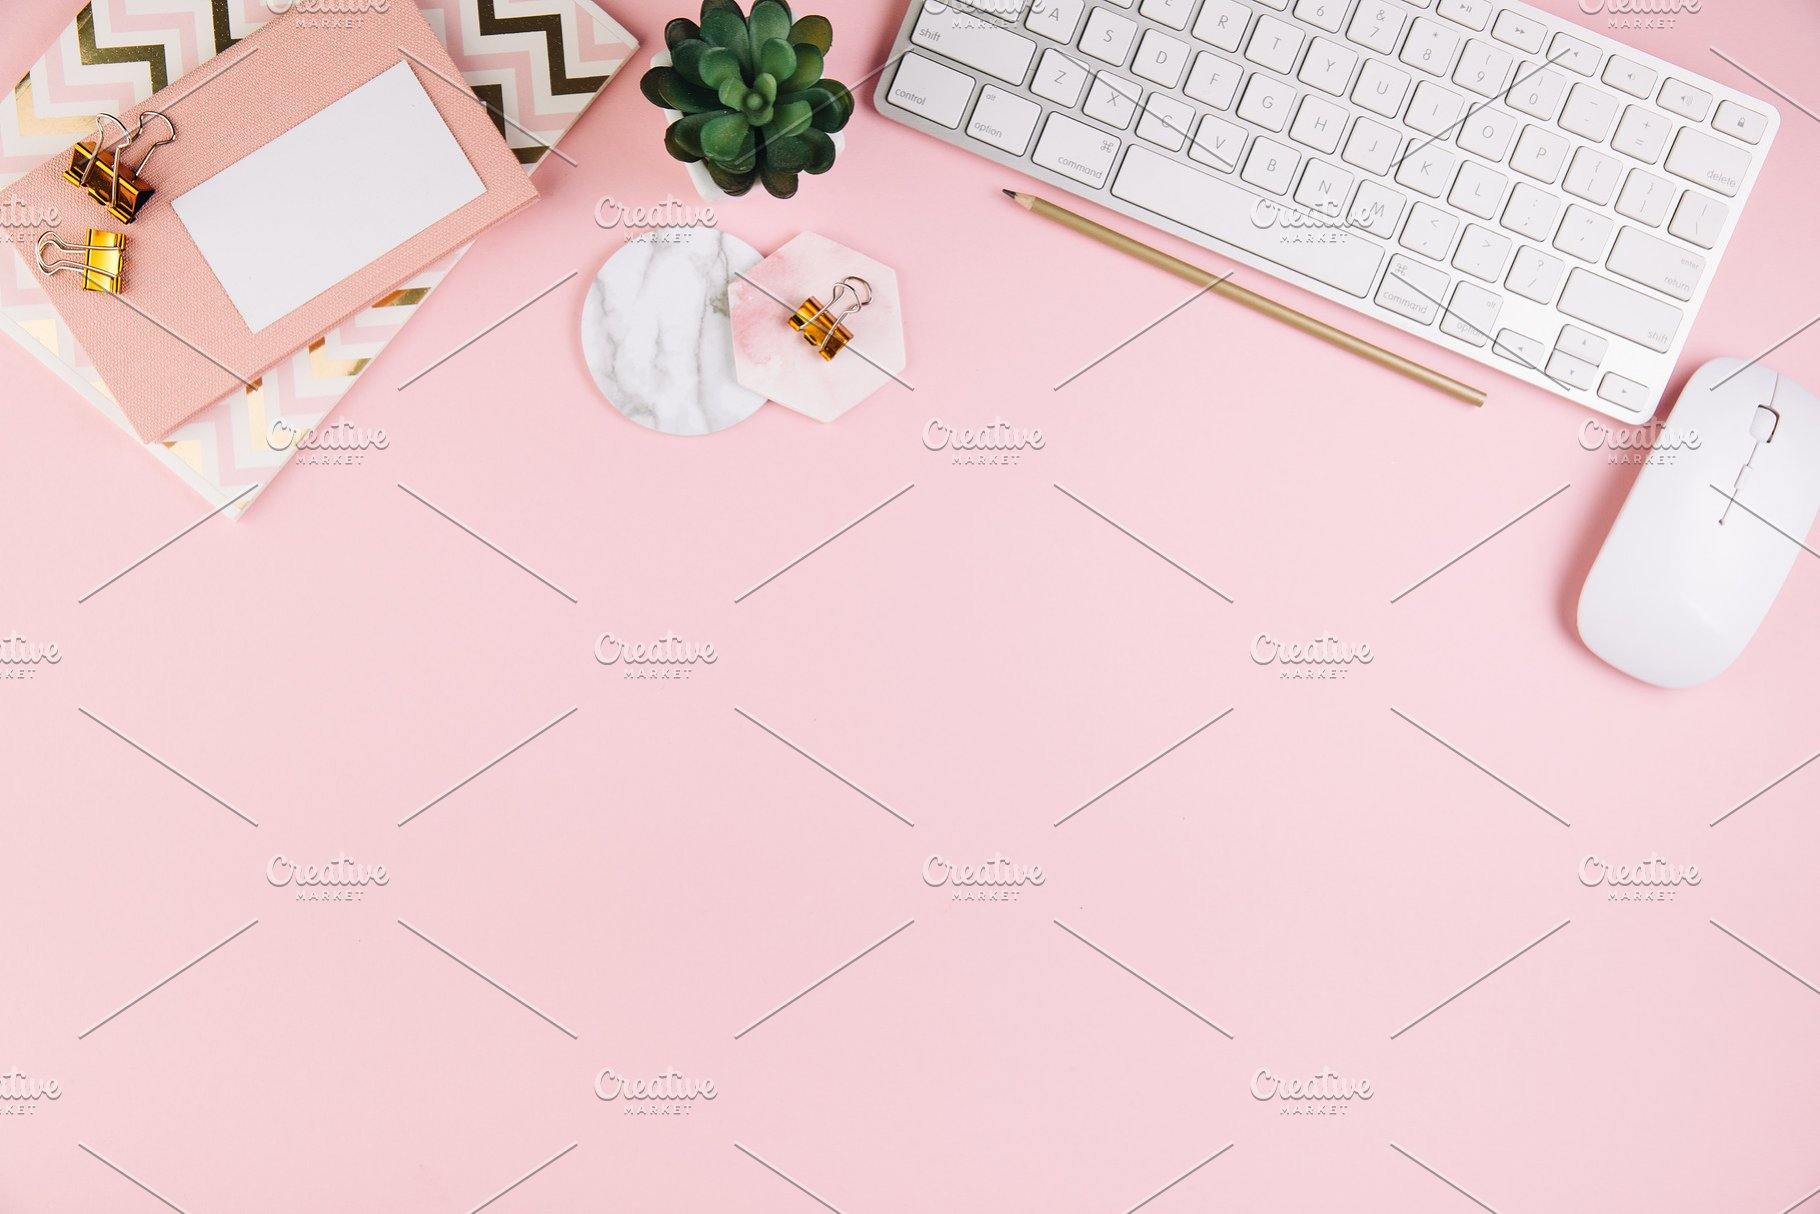 Top view pink office table desk